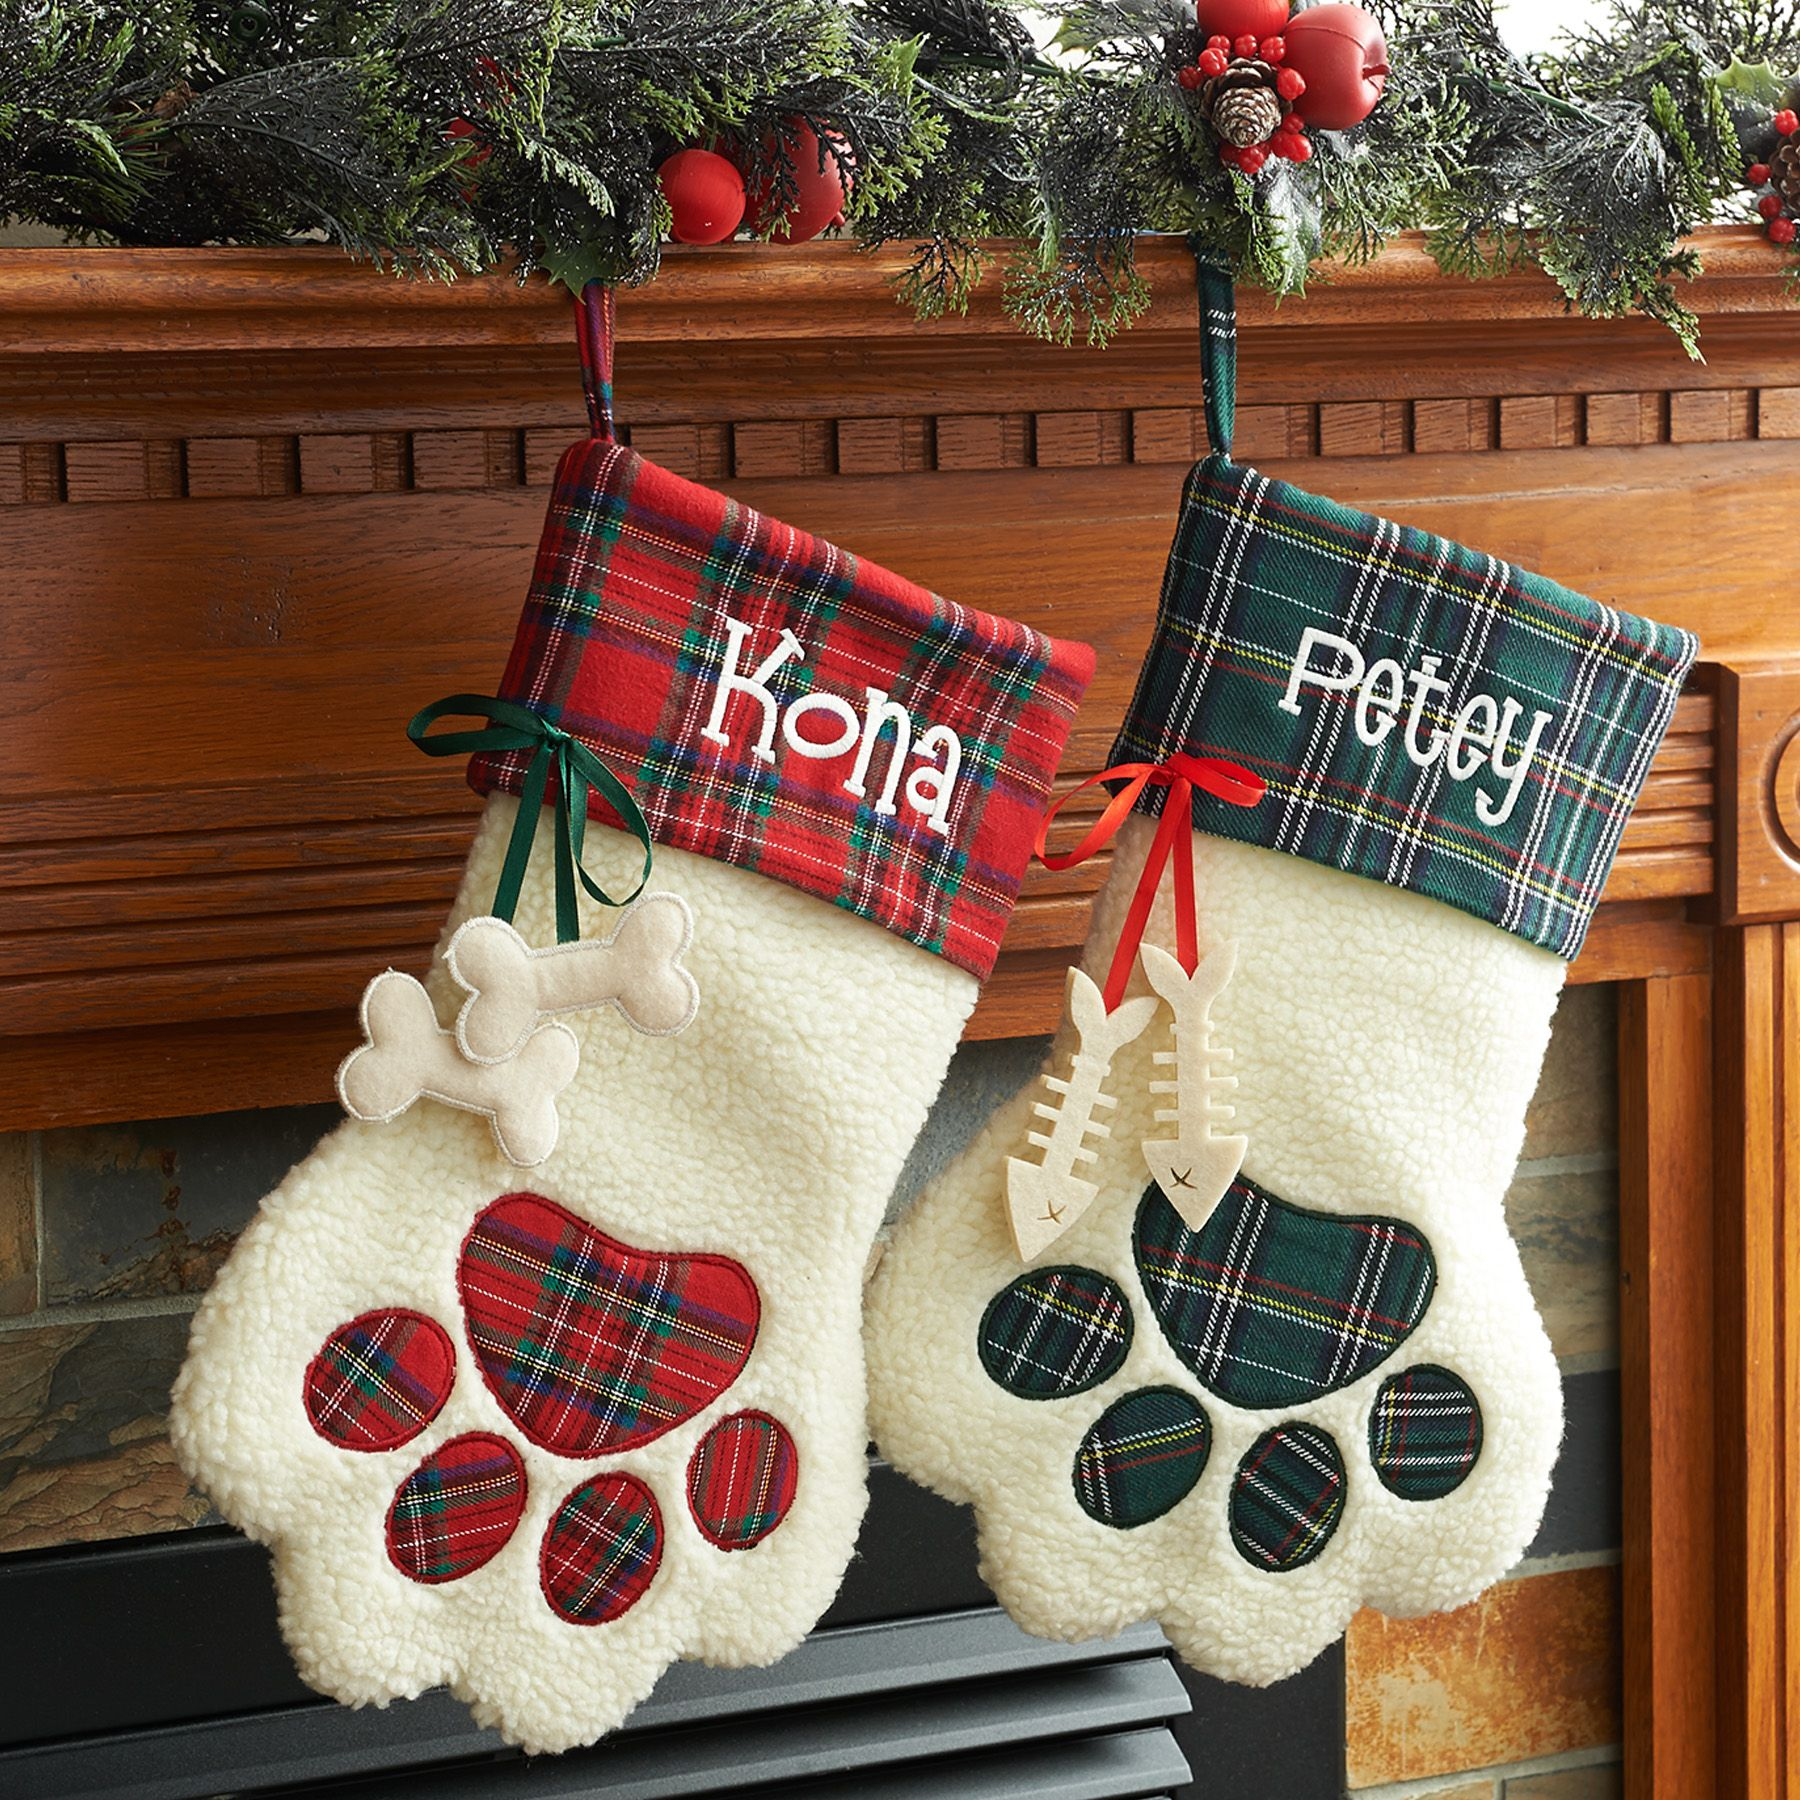 Add some jingle to the hearth with